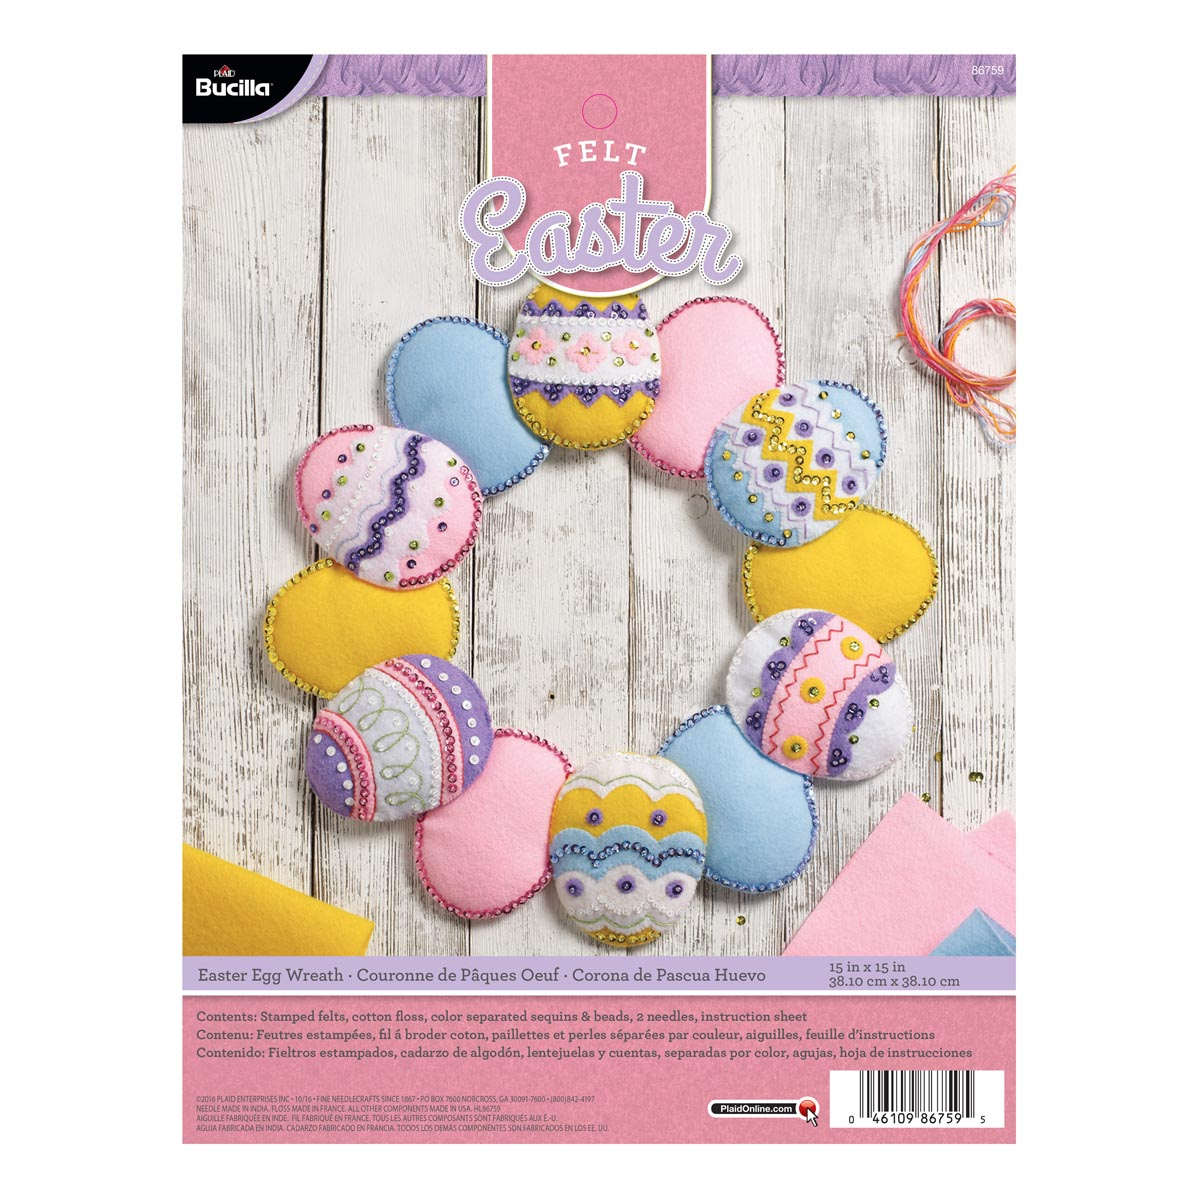 Bucilla ® Seasonal - Felt - Home Decor - Easter Eggs Wreath - 86759